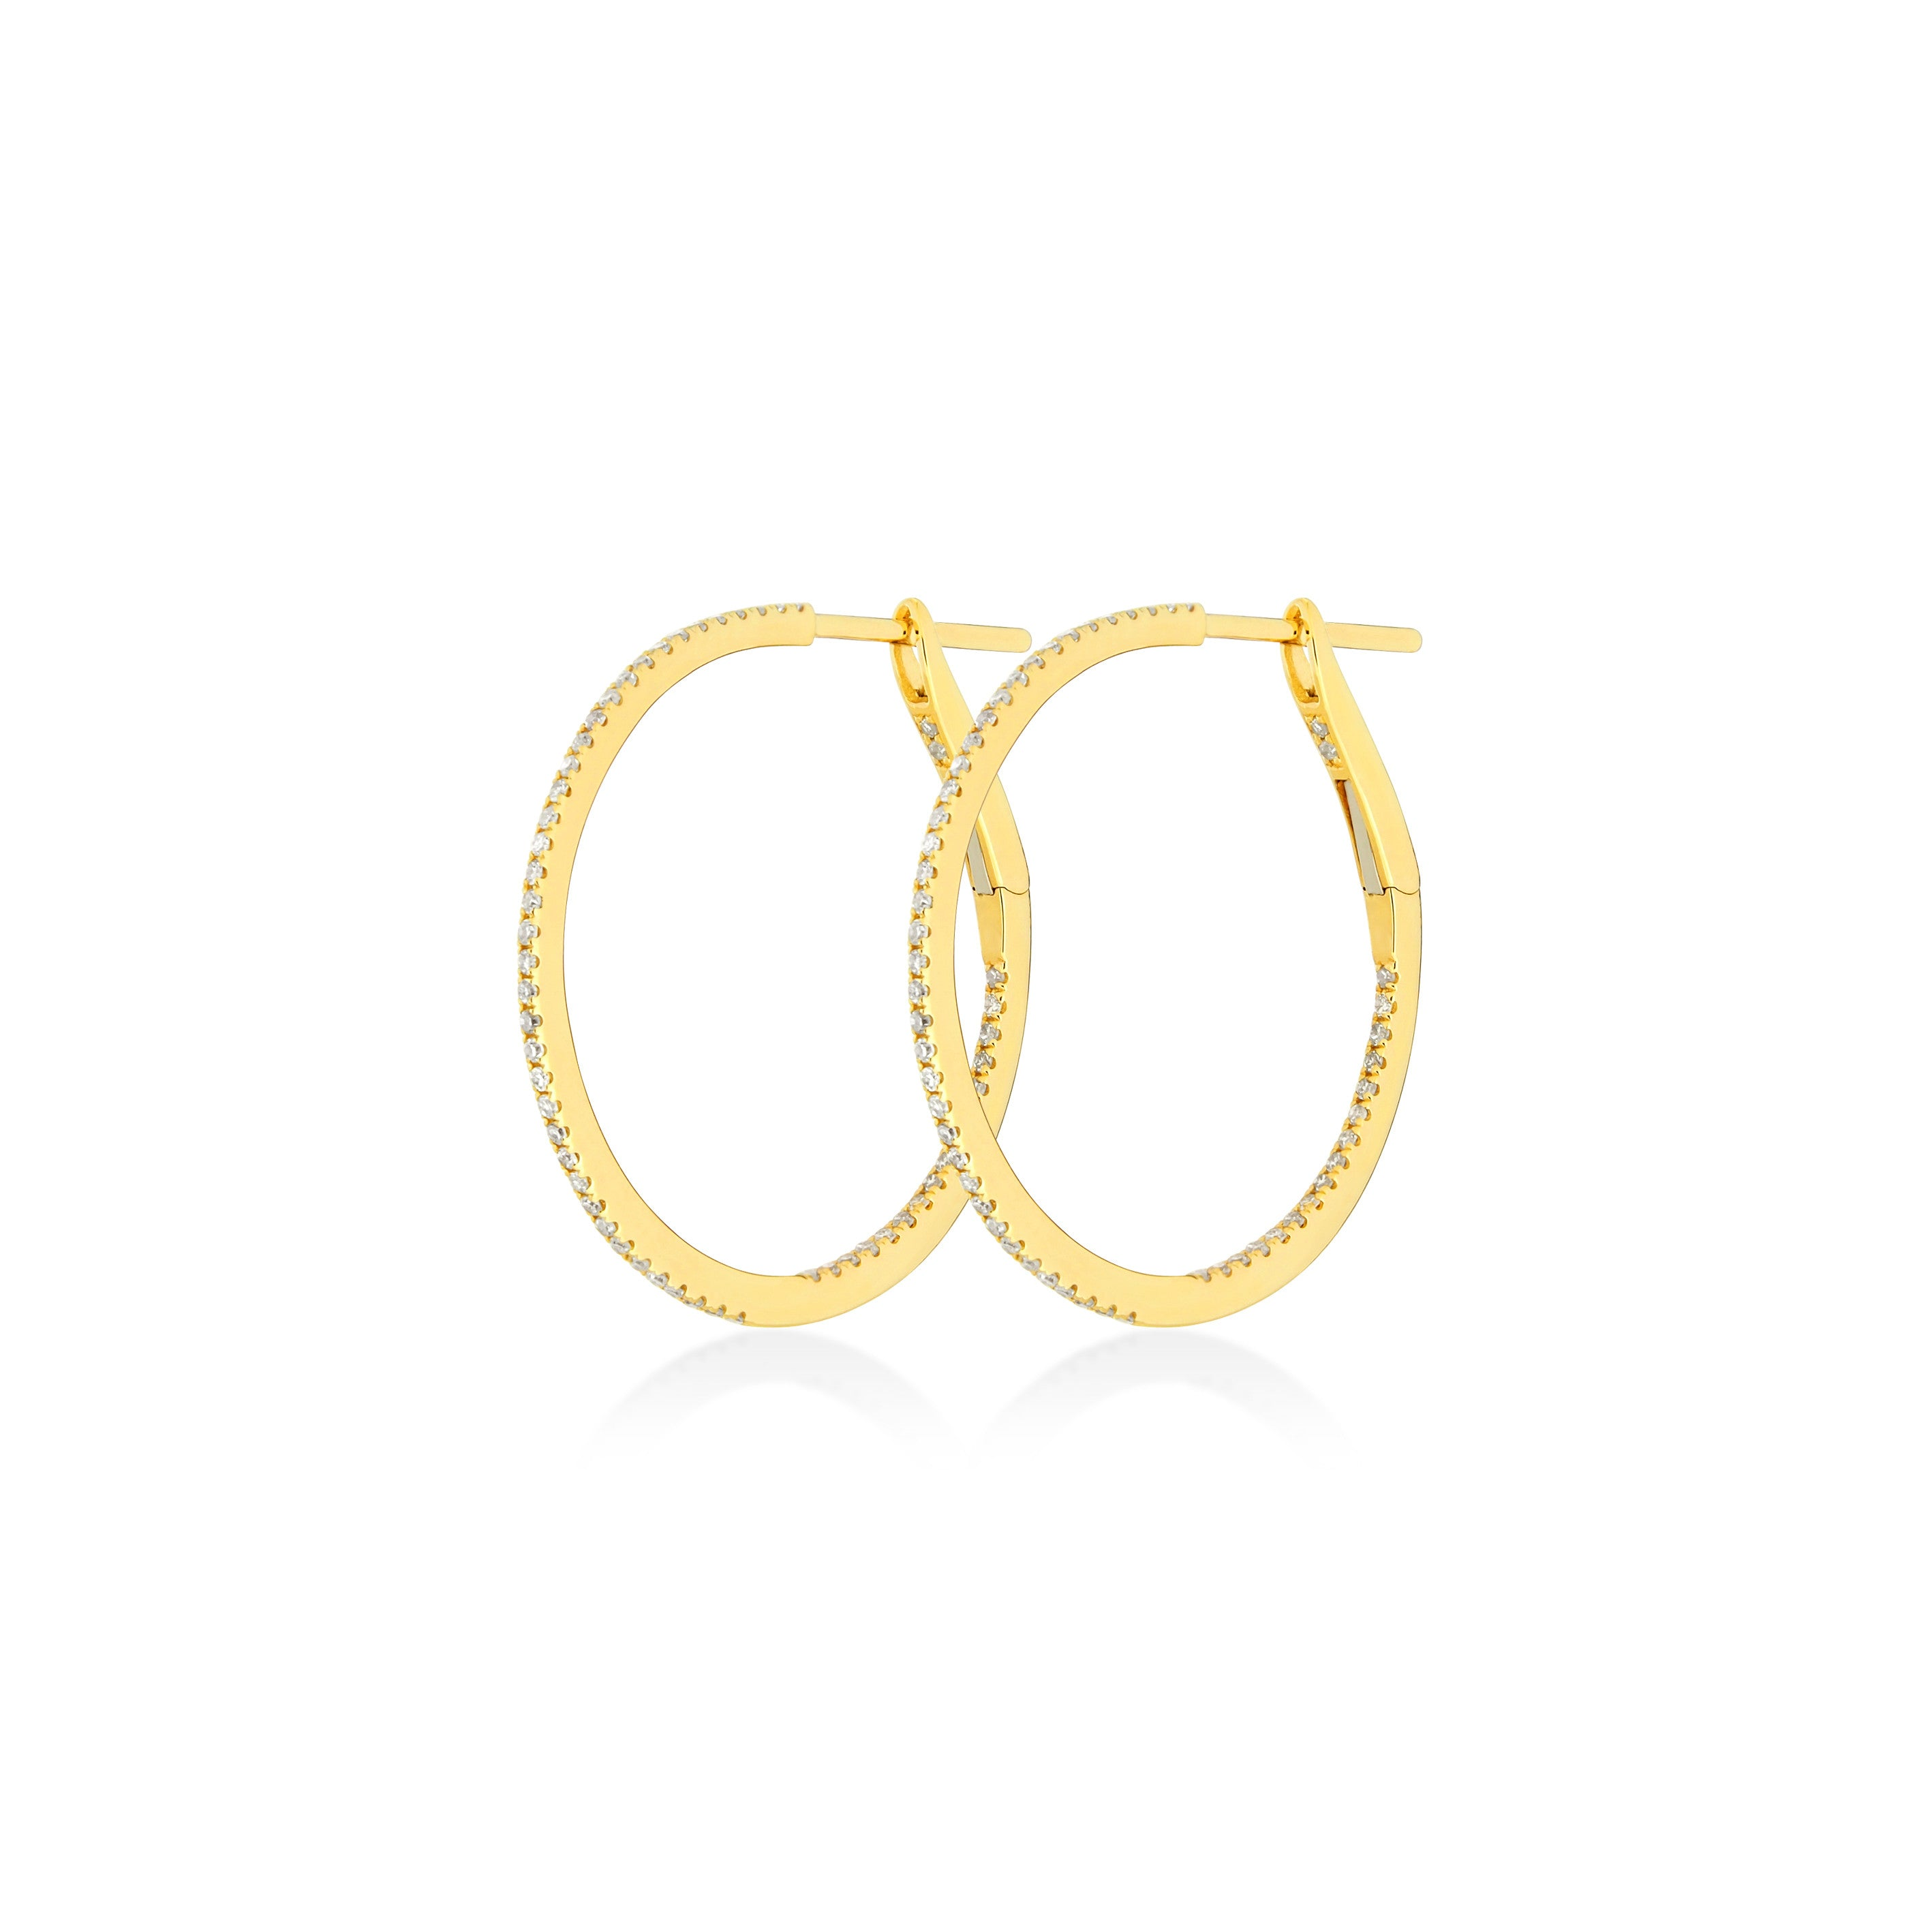 S Hoop Earrings 1 Inch/25 MM